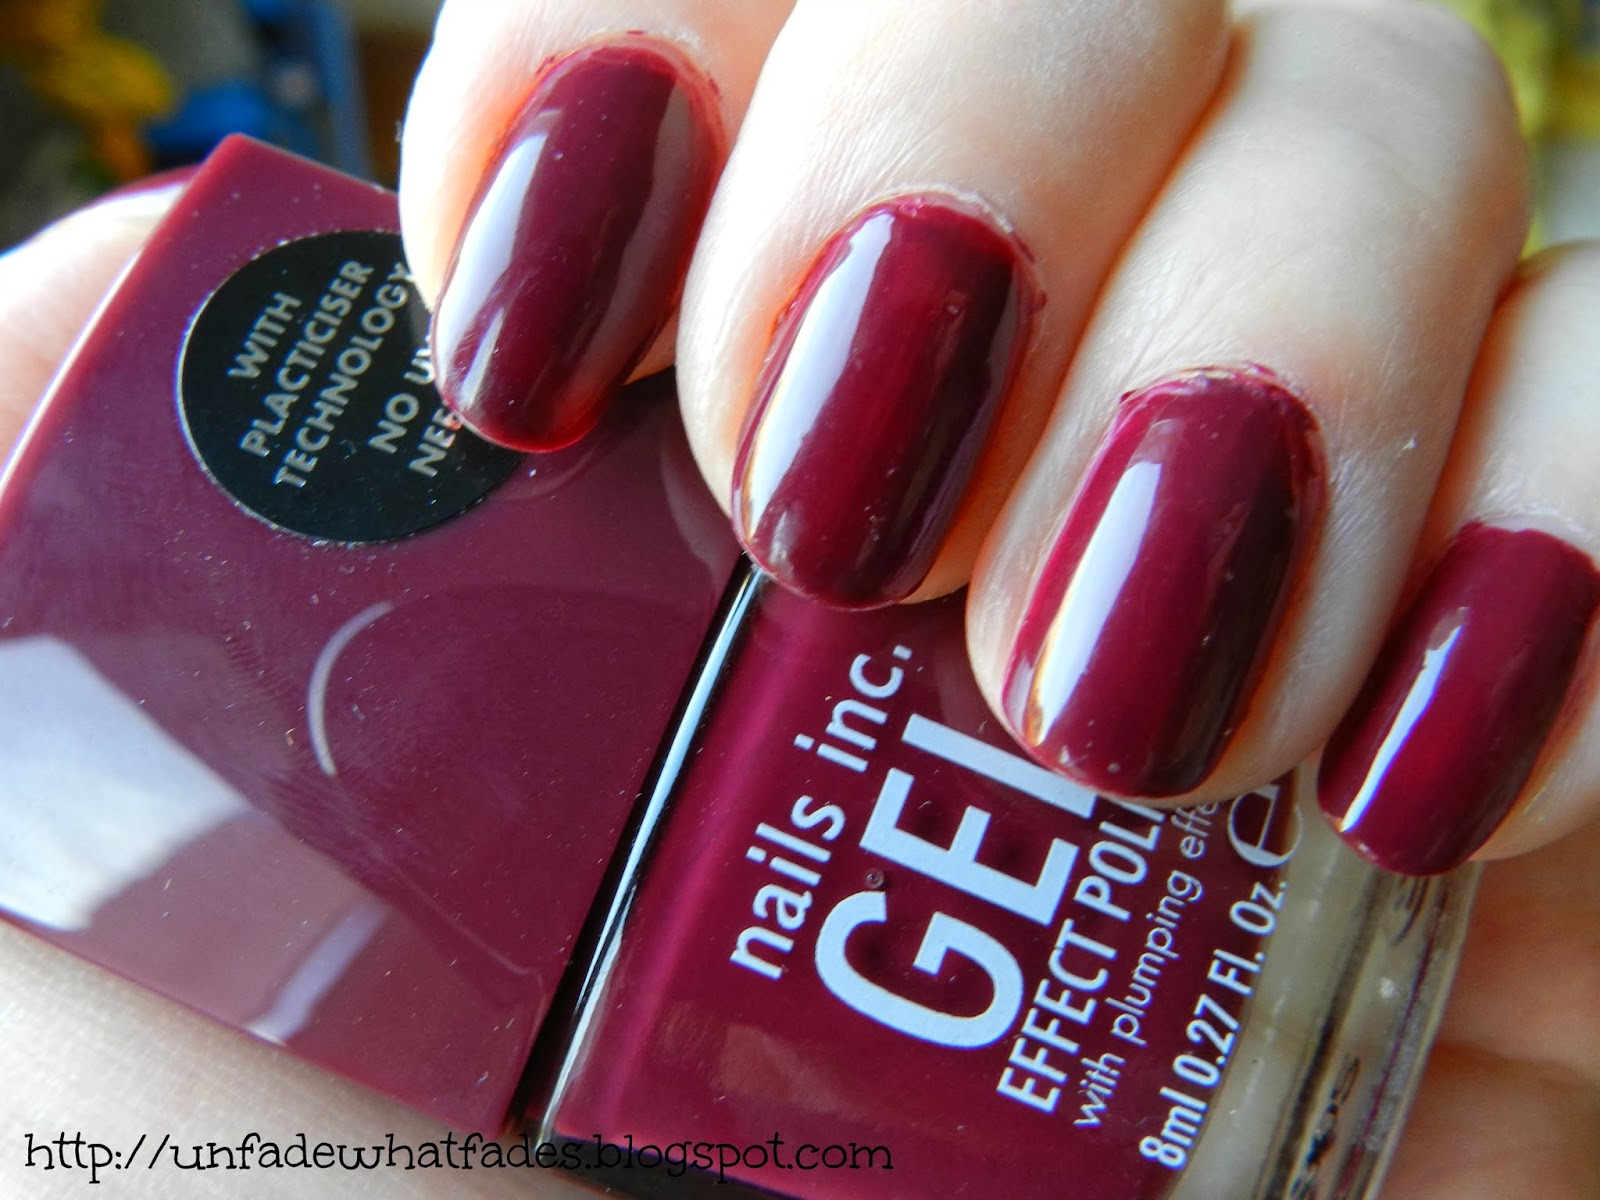 Nails Inc Gel Nail Polish Review